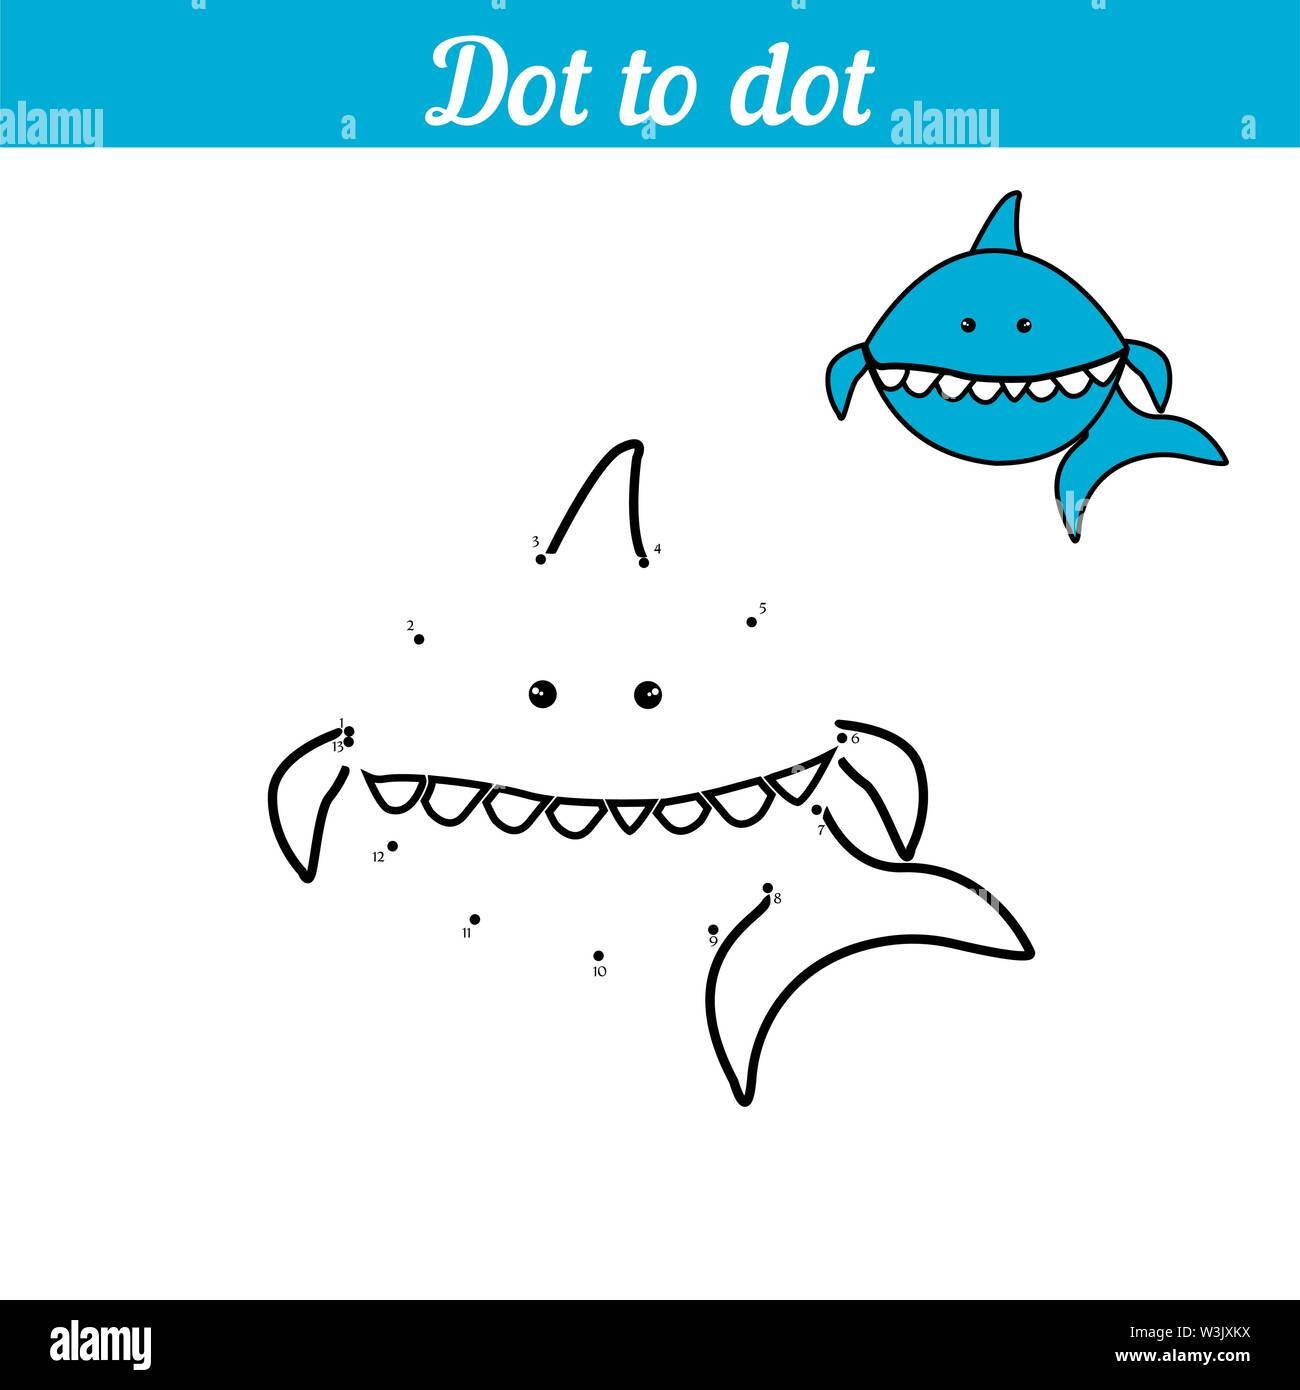 Shark Coloring Game By Numbers Connect The Dots Educational Card For Preschoolers Sea Page With Funny Cartoon Character With An Example Simple Illustration For The Little Ones Marine Animal Blue Shark